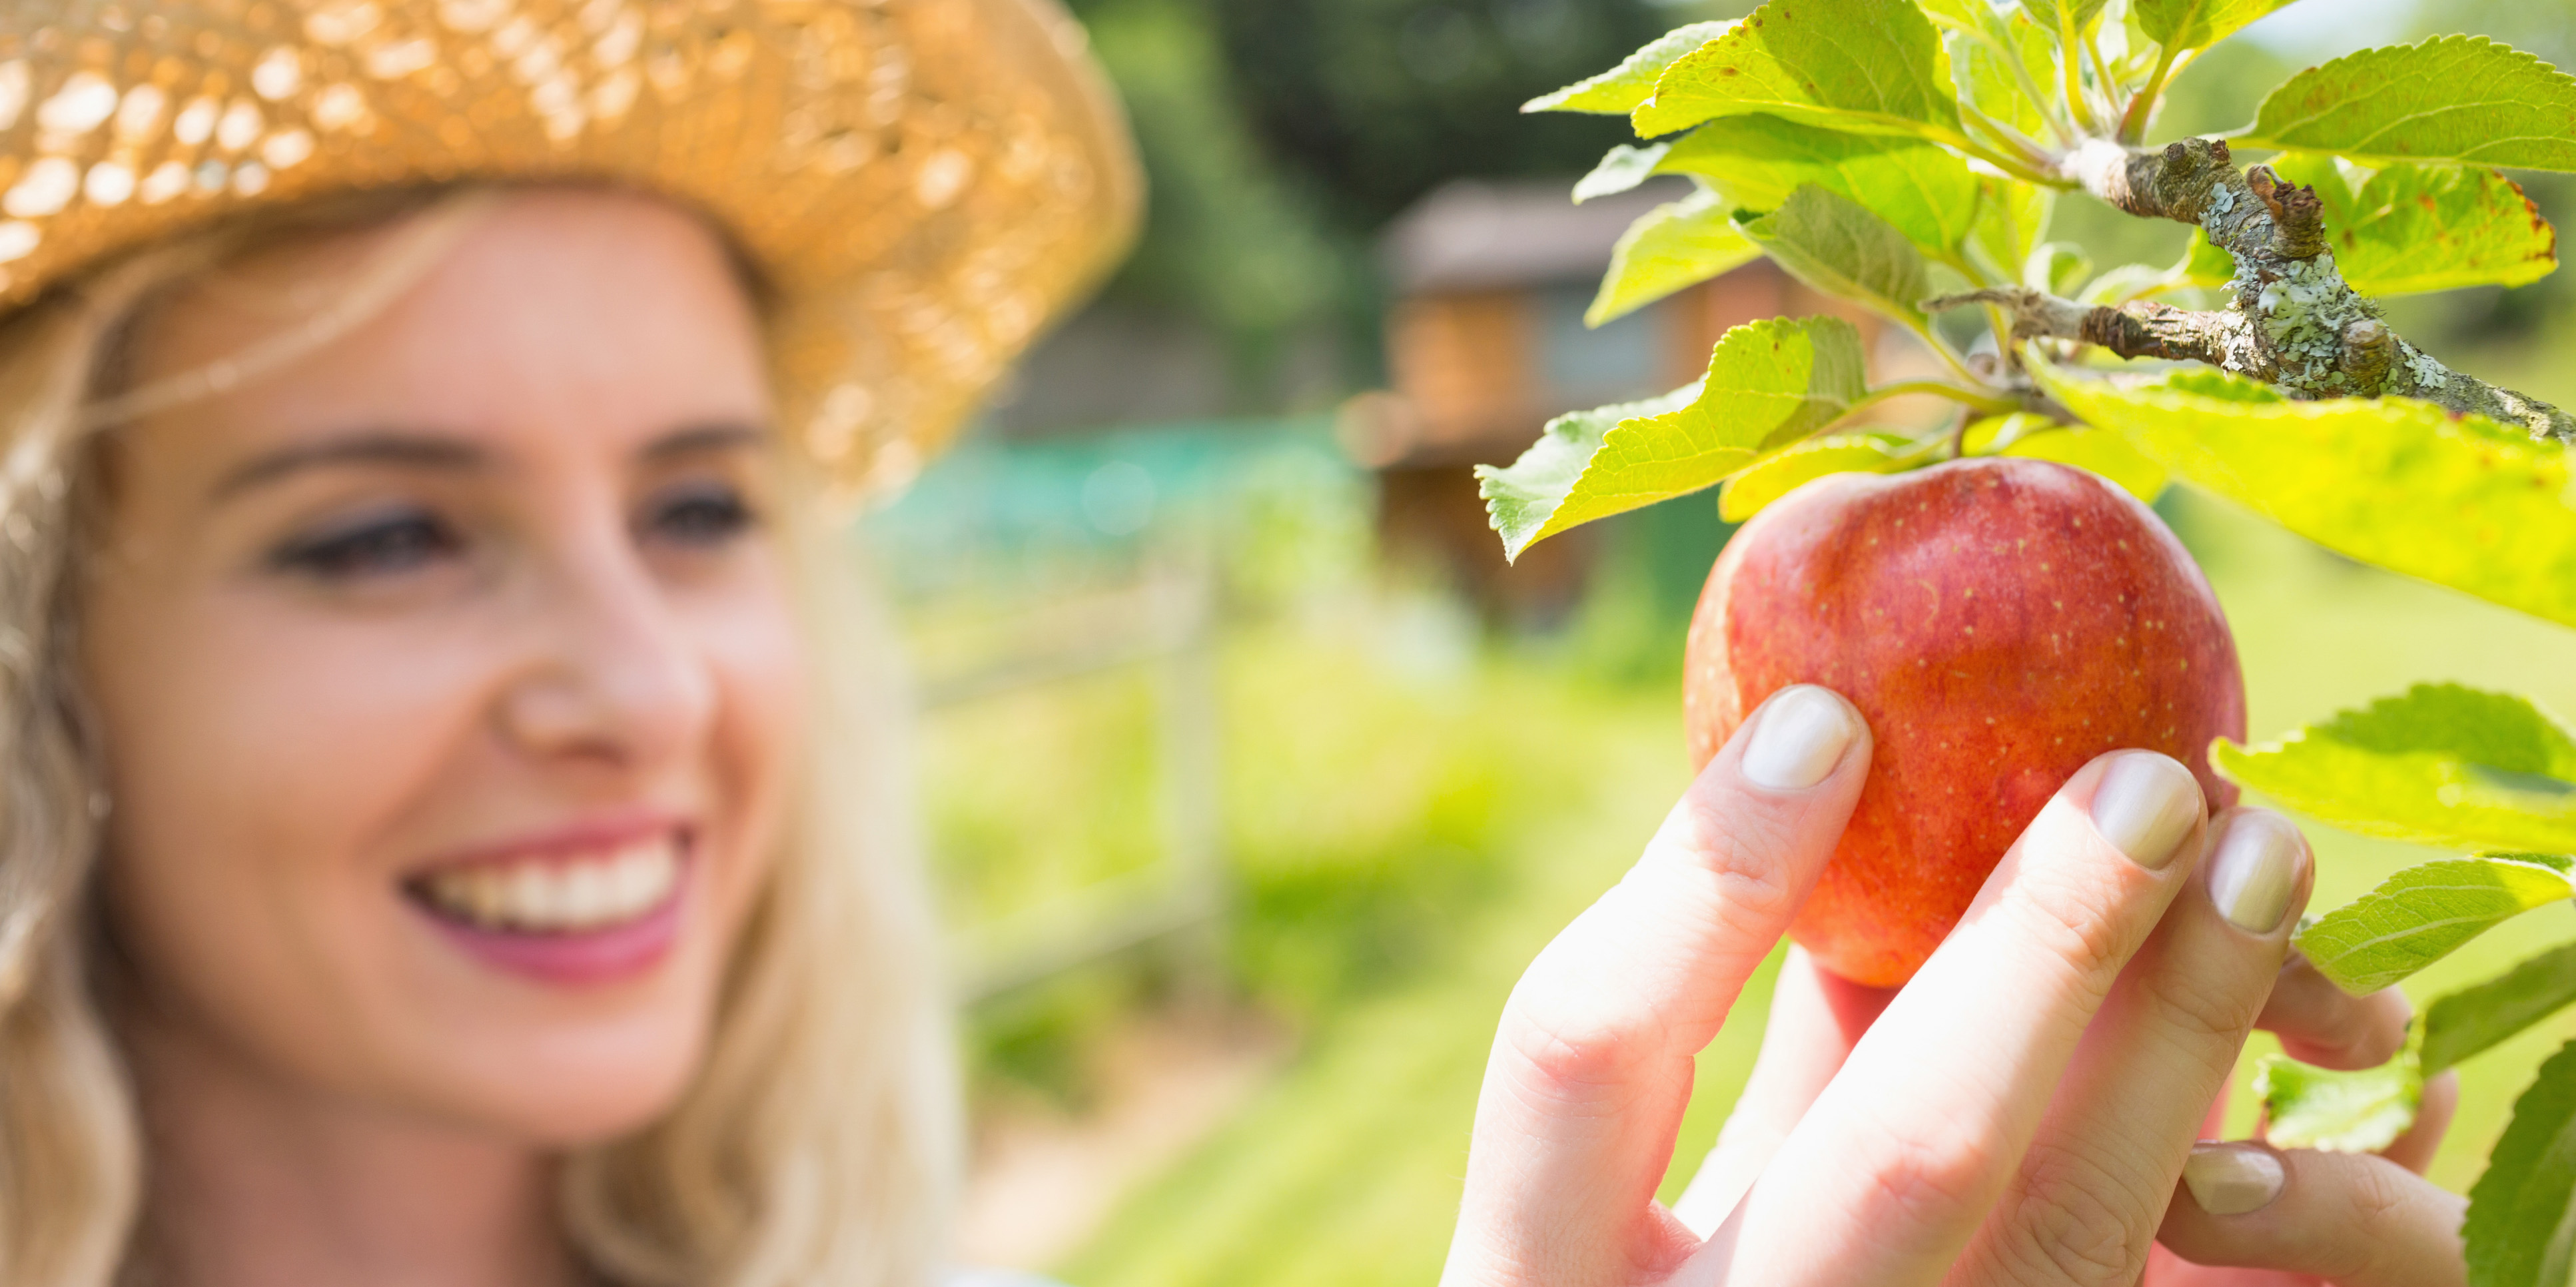 Young happy blonde picking an apple from a tree